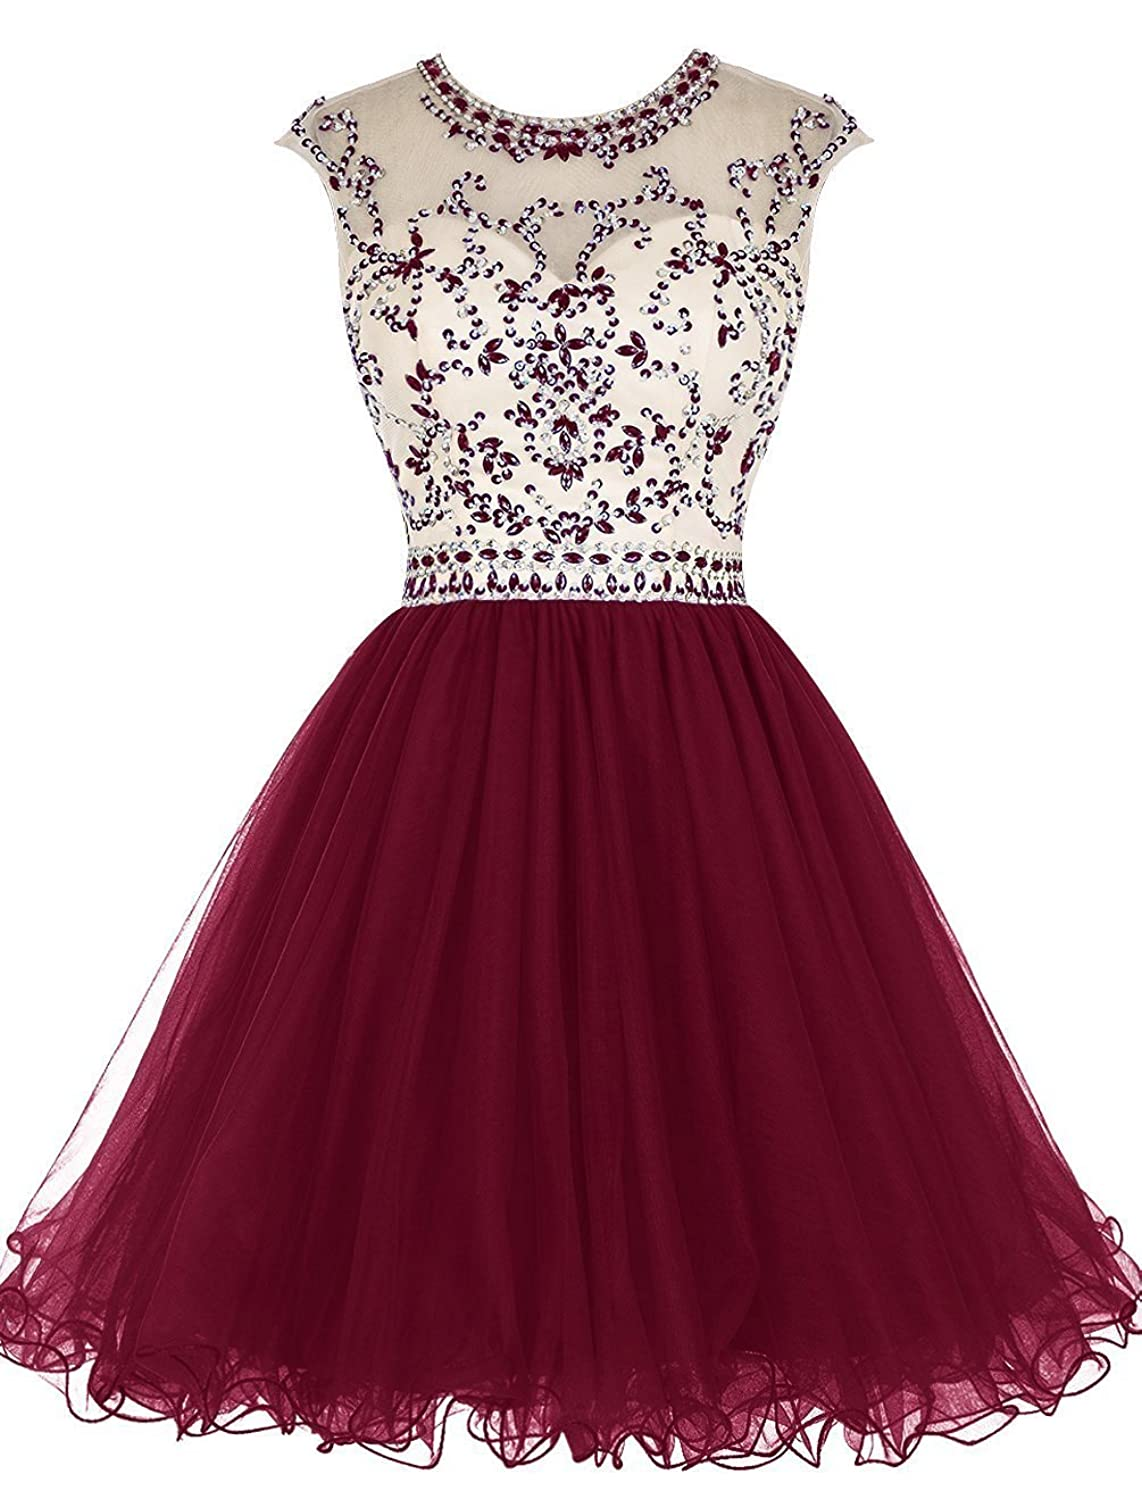 Uryouthstyle Beaded Homecoming dress short Prom Dresses